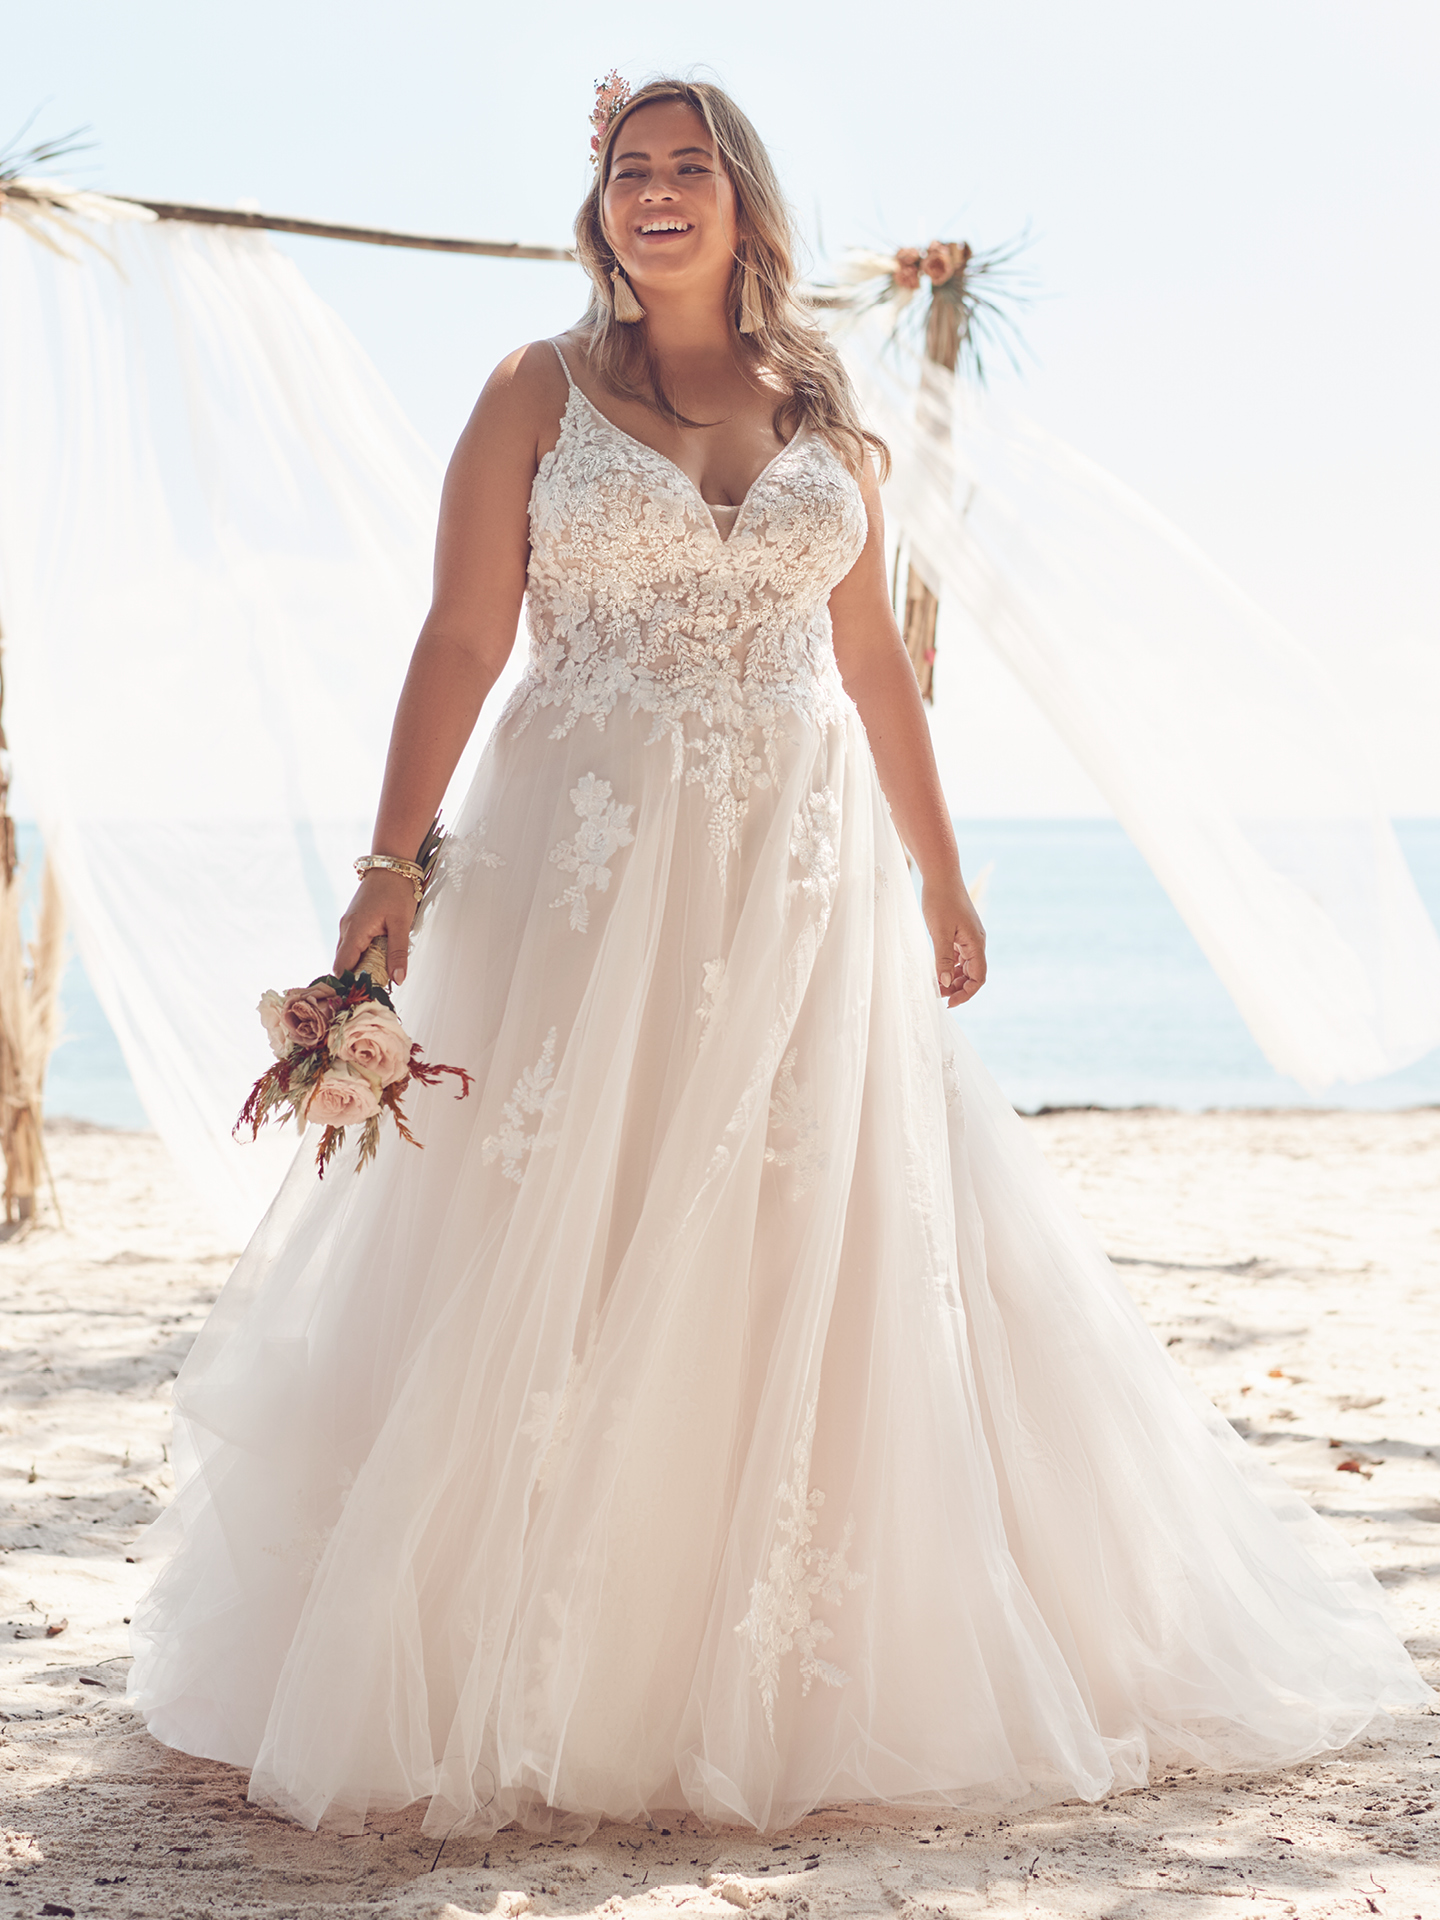 Bride Wearing Plus Size A-line for Pear-Shaped Body Types Called Jill by Rebecca Ingram